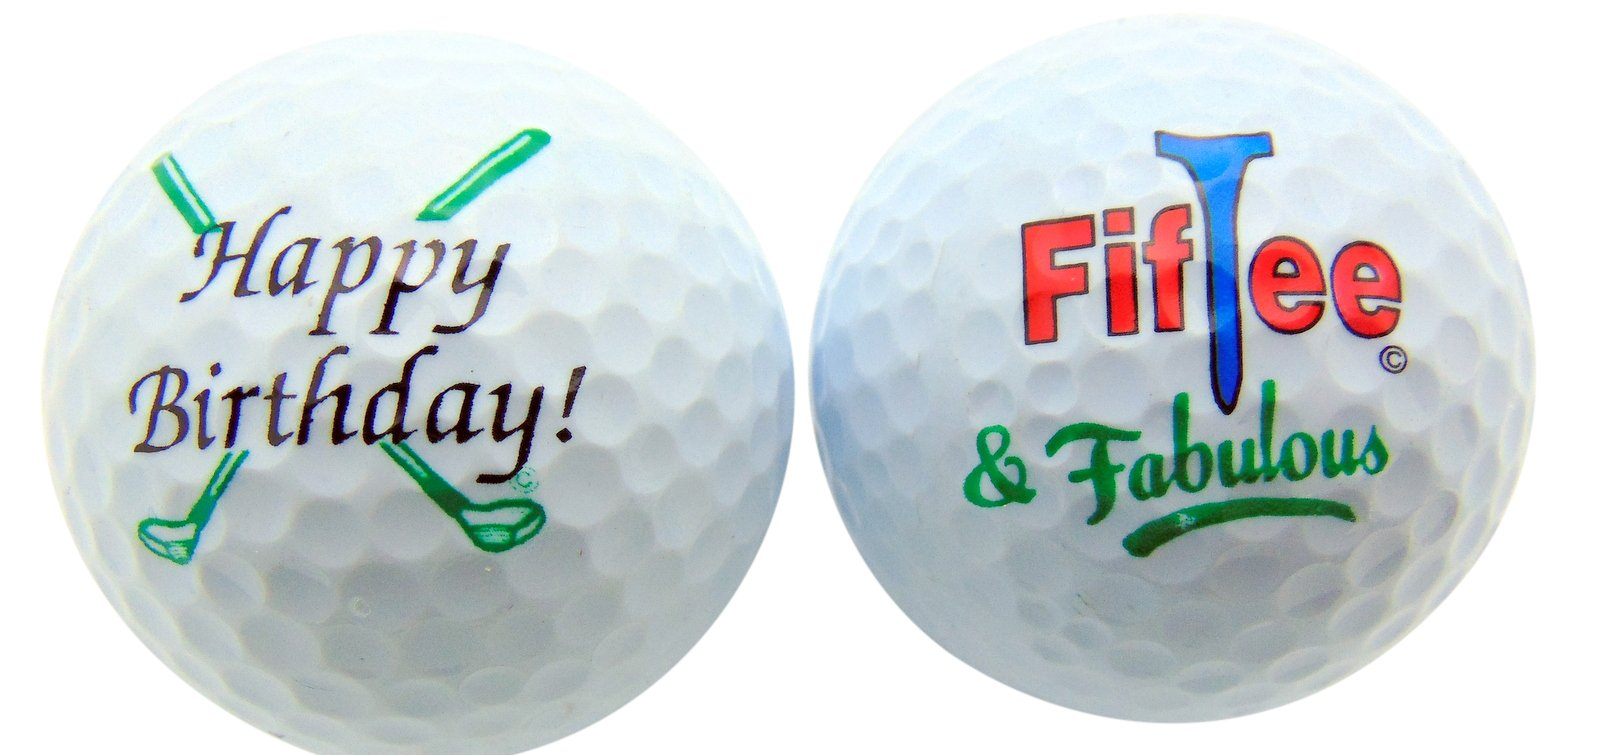 50th Birthday FifTee & Fabulous Set of 2 Golf Ball Golfer Gift Pack